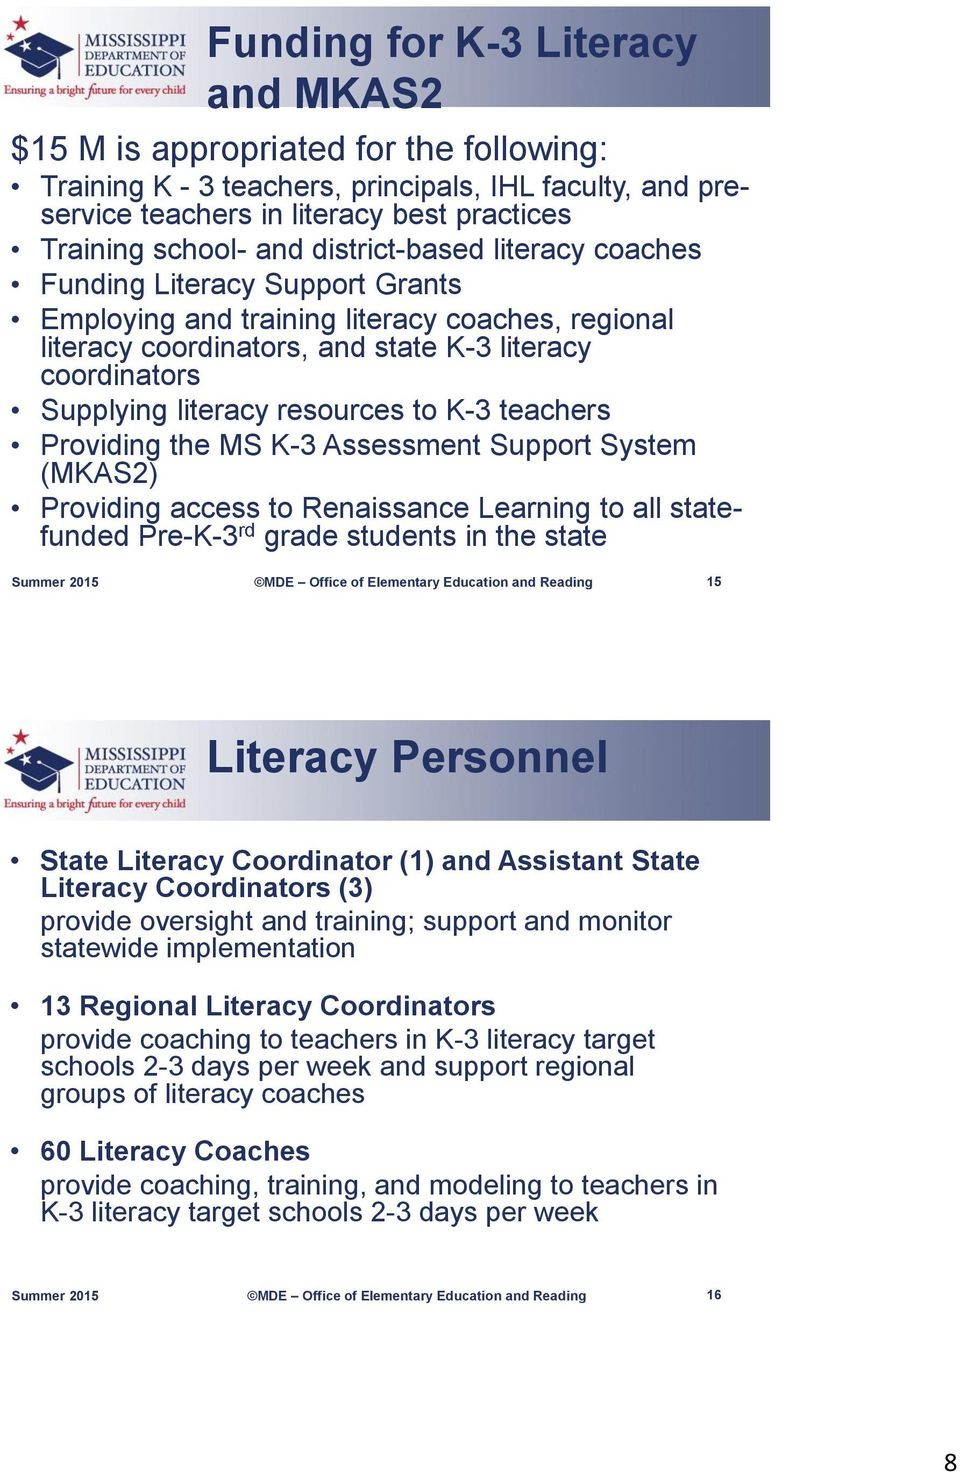 resources to K-3 teachers Providing the MS K-3 Assessment Support System (MKAS2) Providing access to Renaissance Learning to all statefunded Pre-K-3 rd grade students in the state 15 Literacy